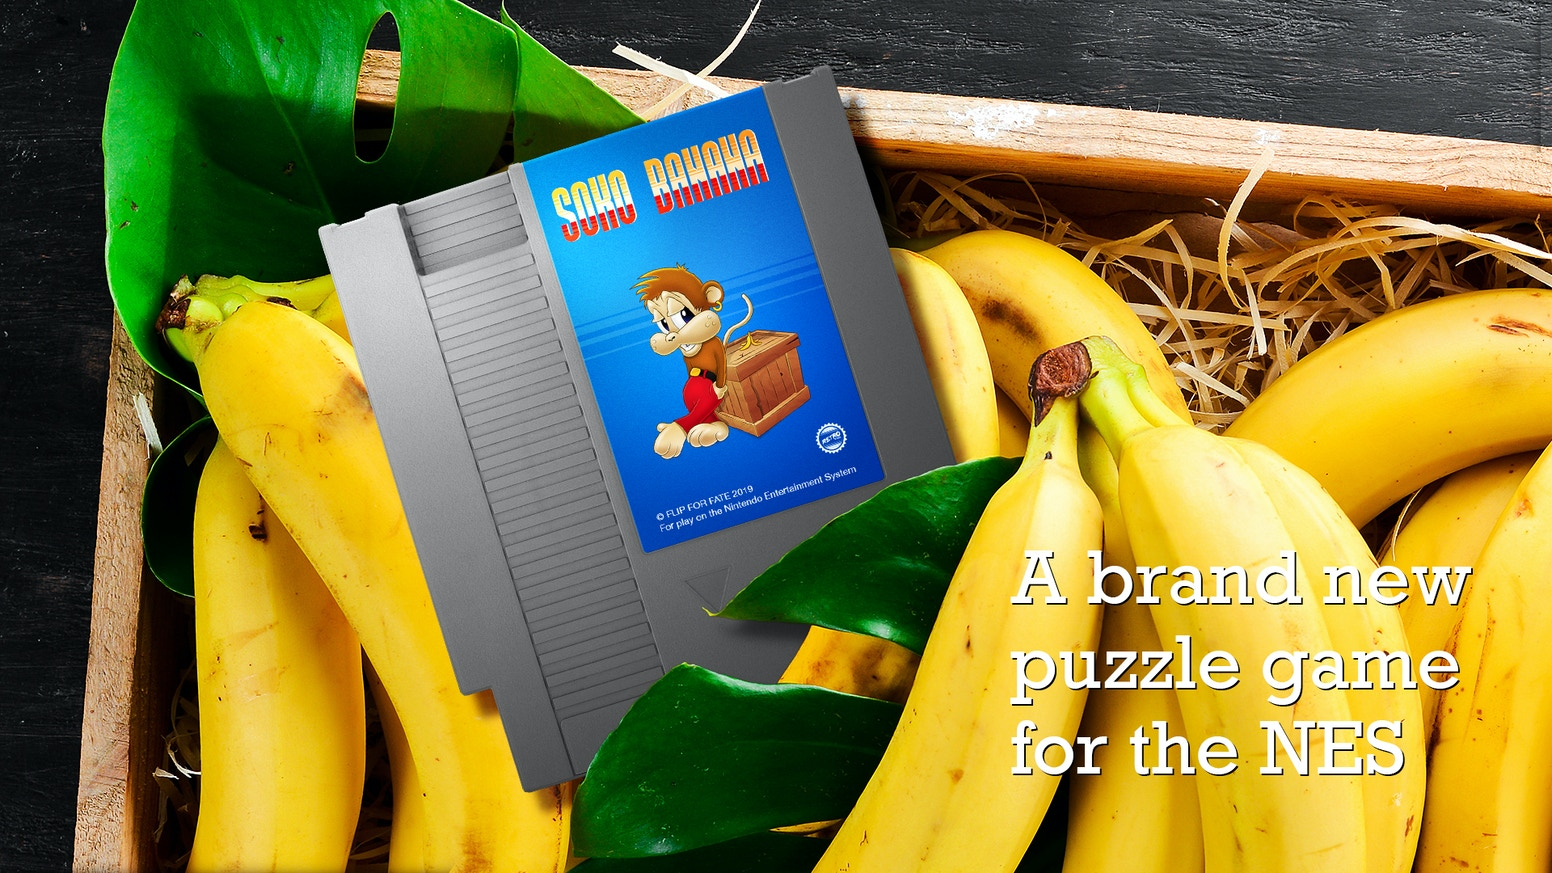 Soko Banana is a brand new puzzle game for the Nintendo Entertainment System. If you missed the Kickstarter campaign, the game is now up for pre-order: